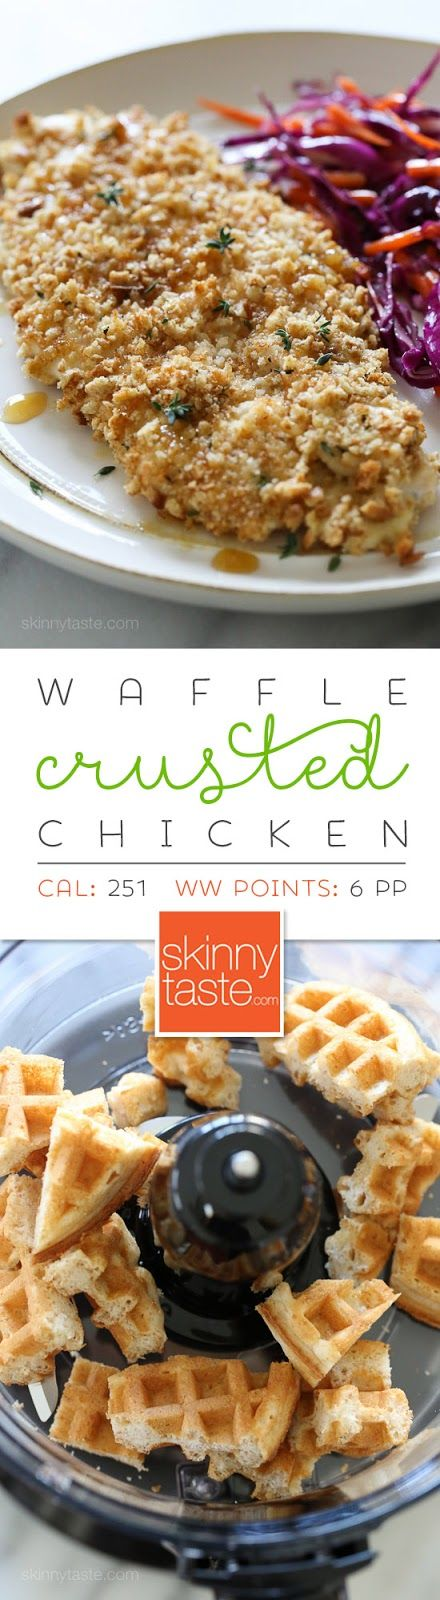 jordans lows Waffle Crusted Chicken with Spicy Maple Sauce  C a healthier twist on chicken and waffles